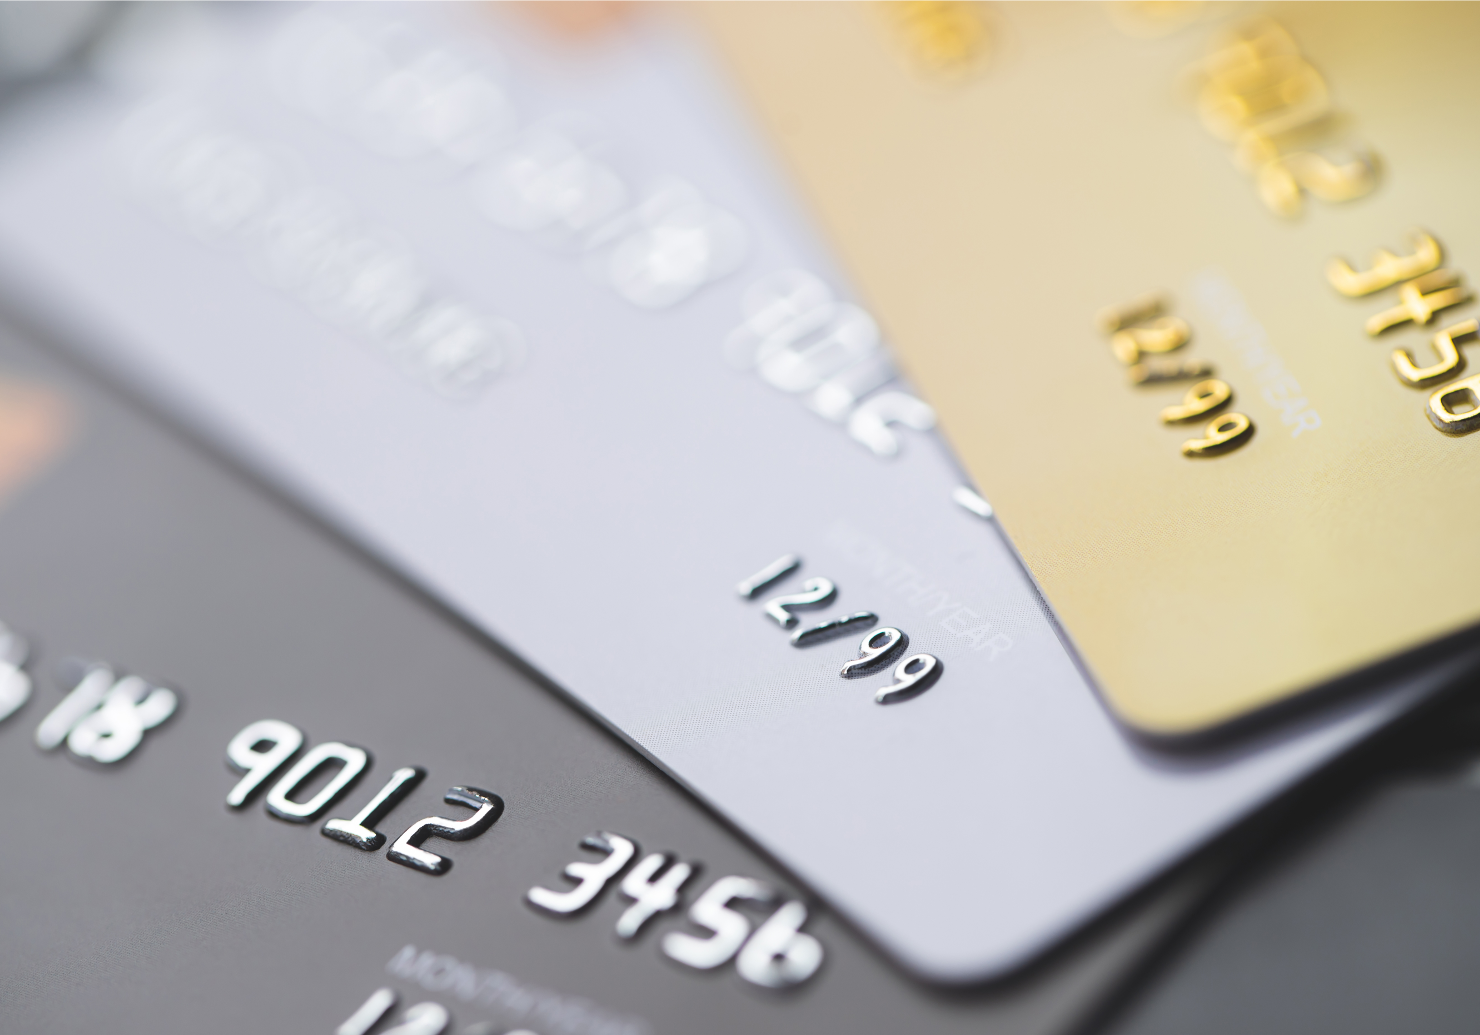 With so many credit card options available, how are none of them funding green energy?